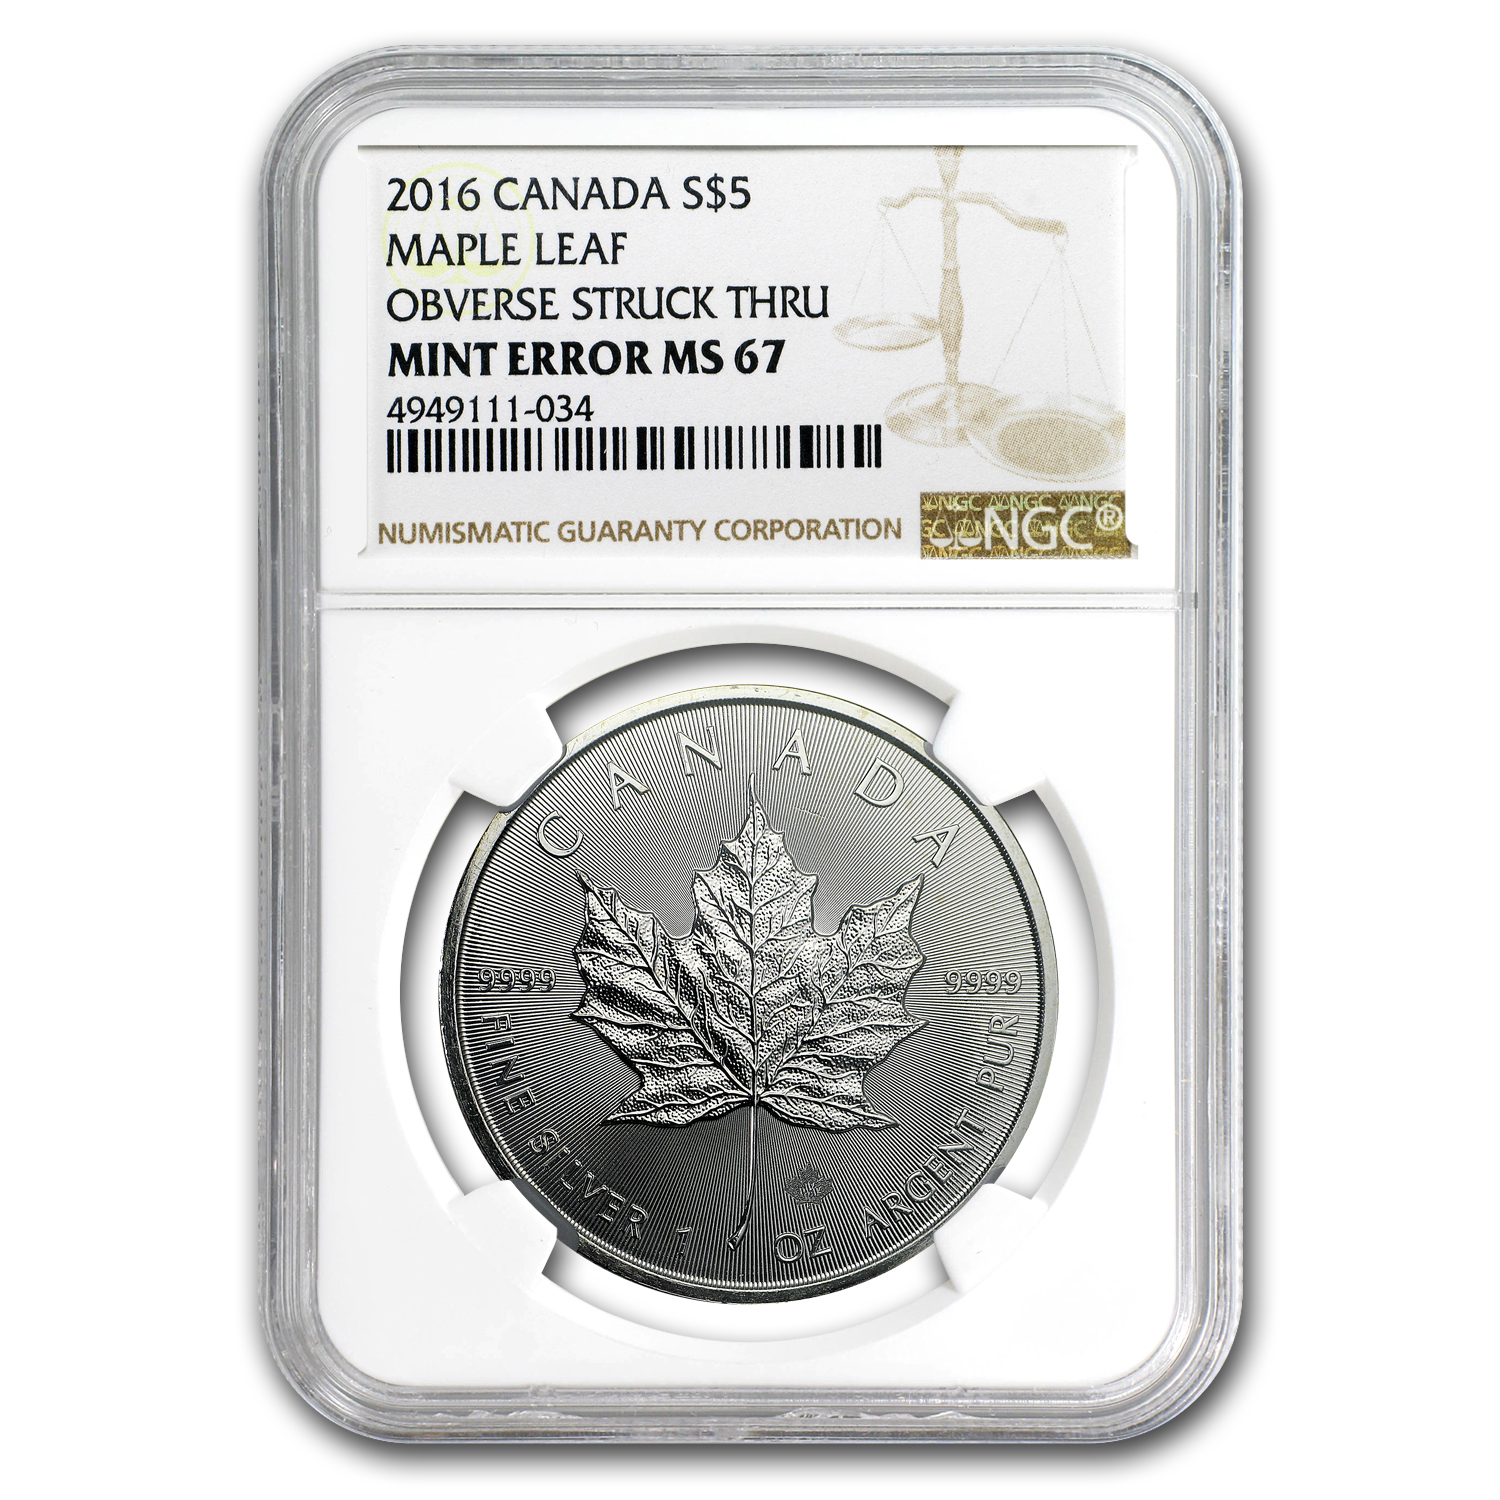 2016 Canada 1 oz Silver Maple Leaf MS-67 NGC (Obv Mint Error)